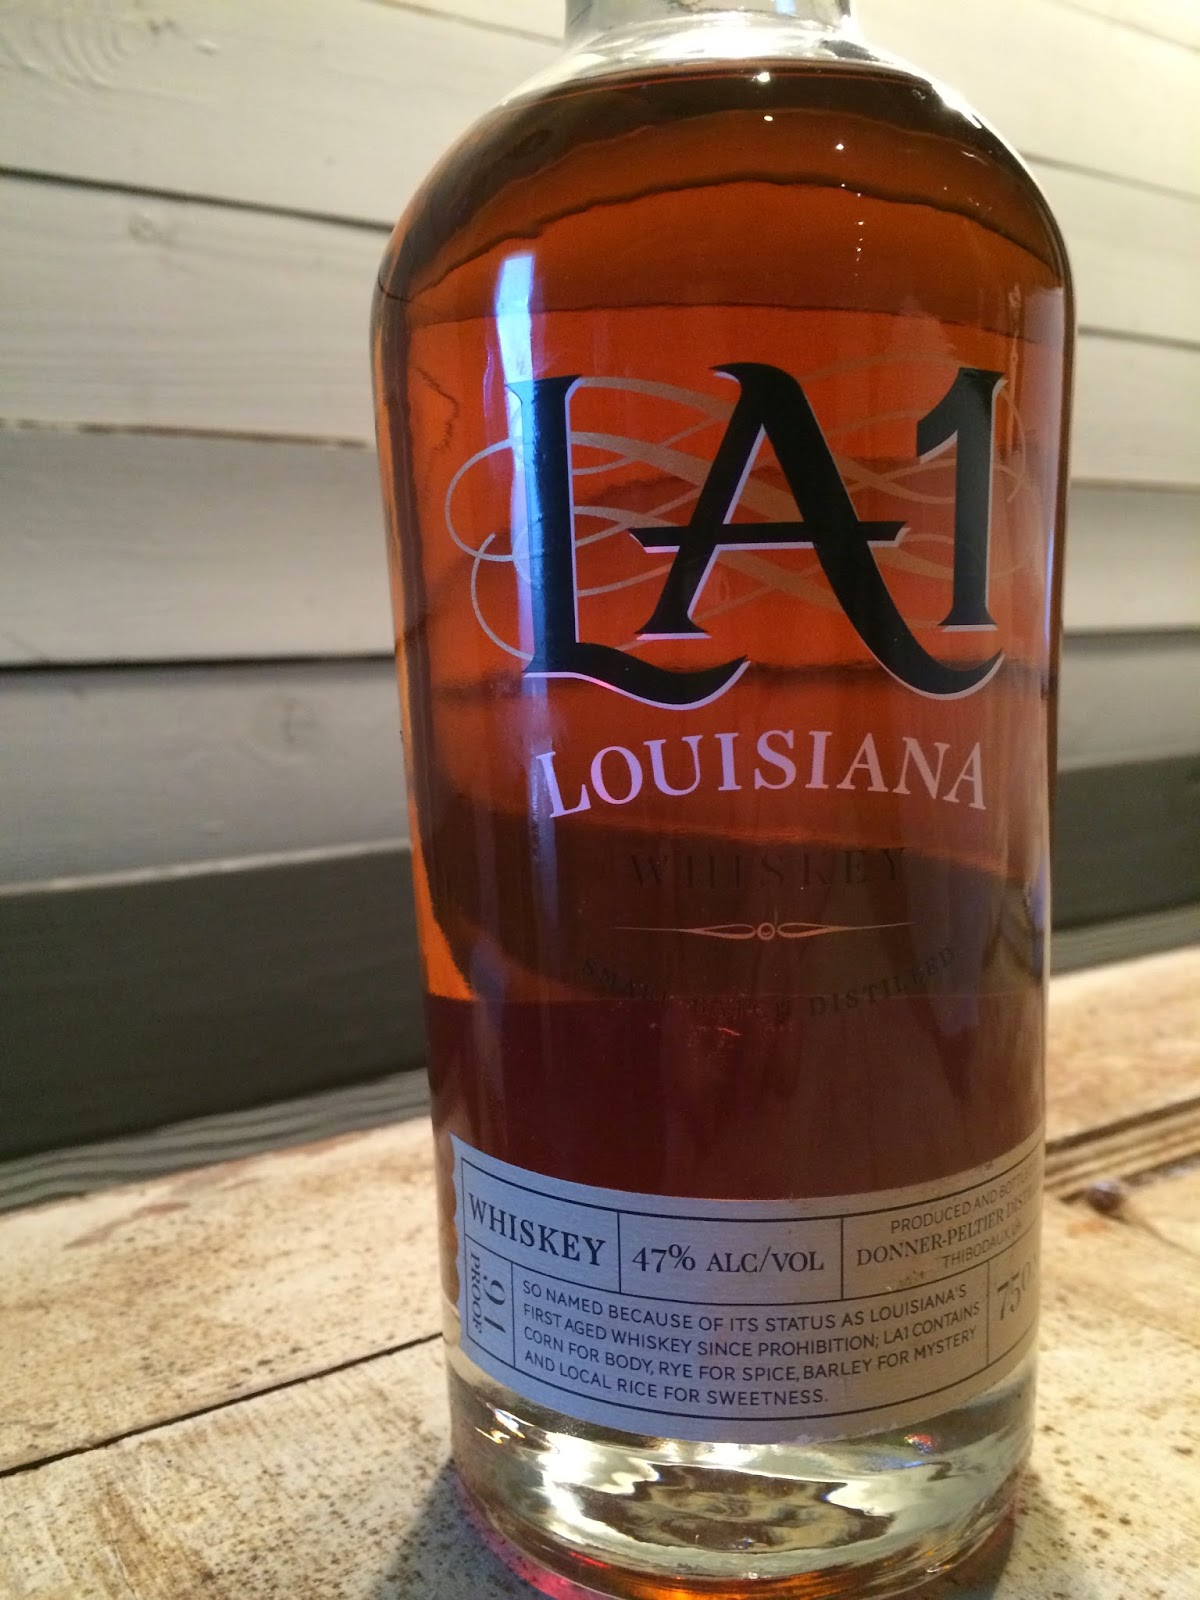 Donner-Peltier's LA1 Whiskey